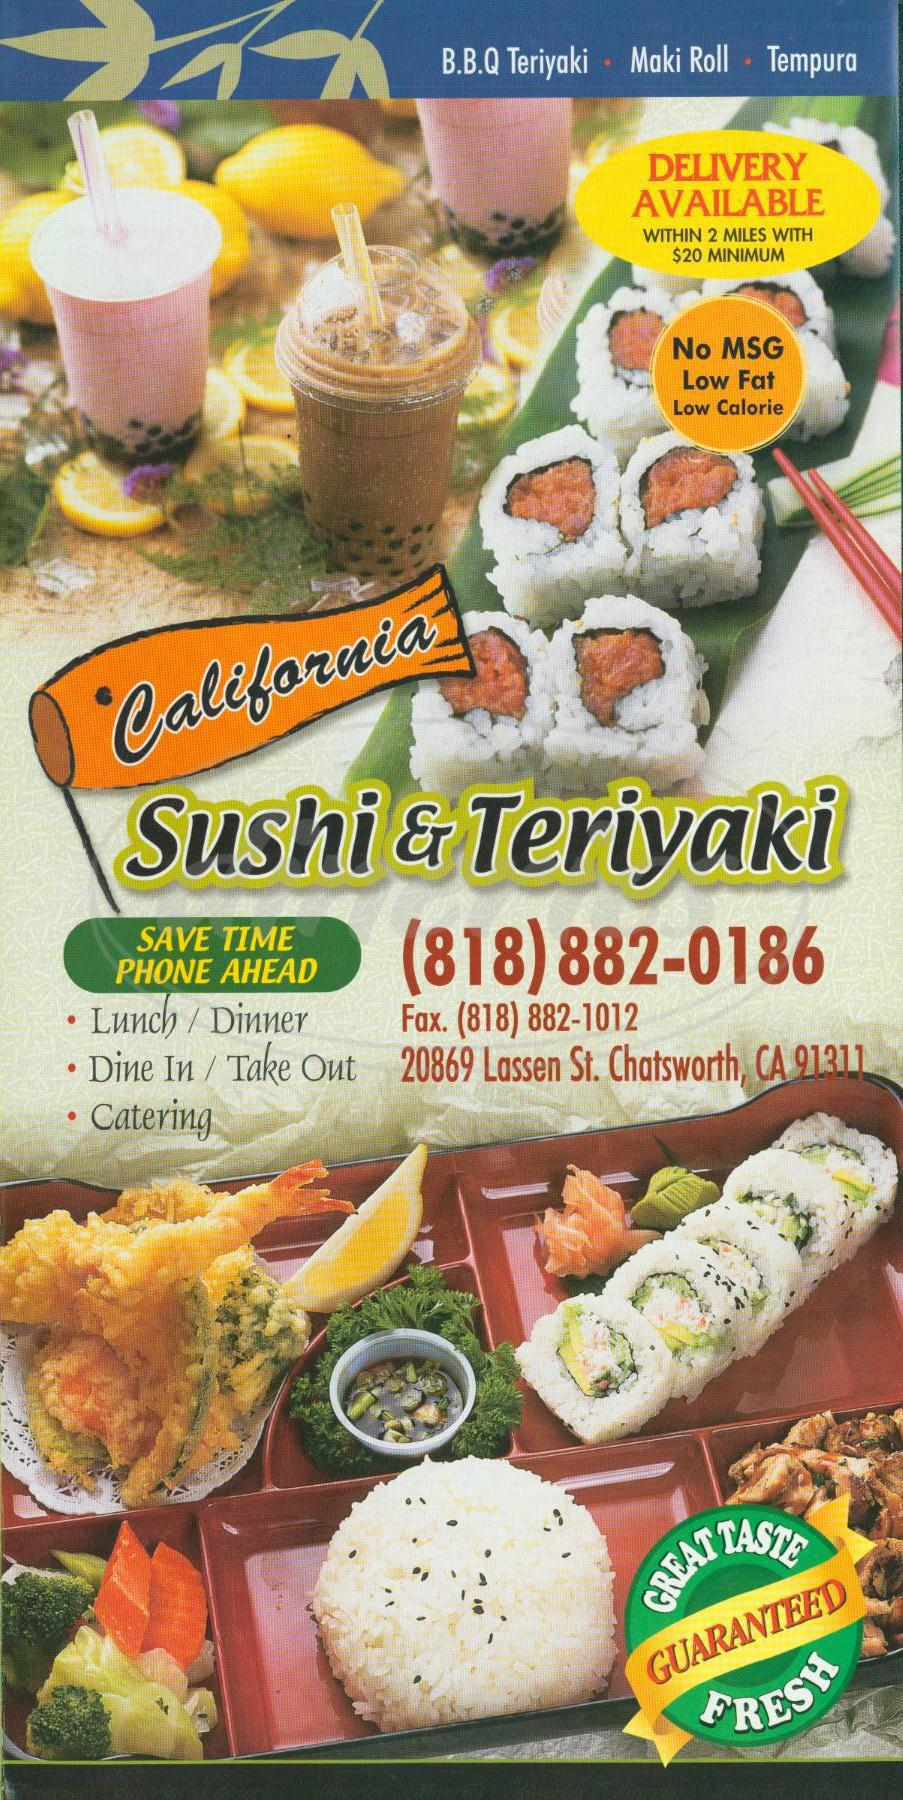 menu for California Sushi & Teriyaki